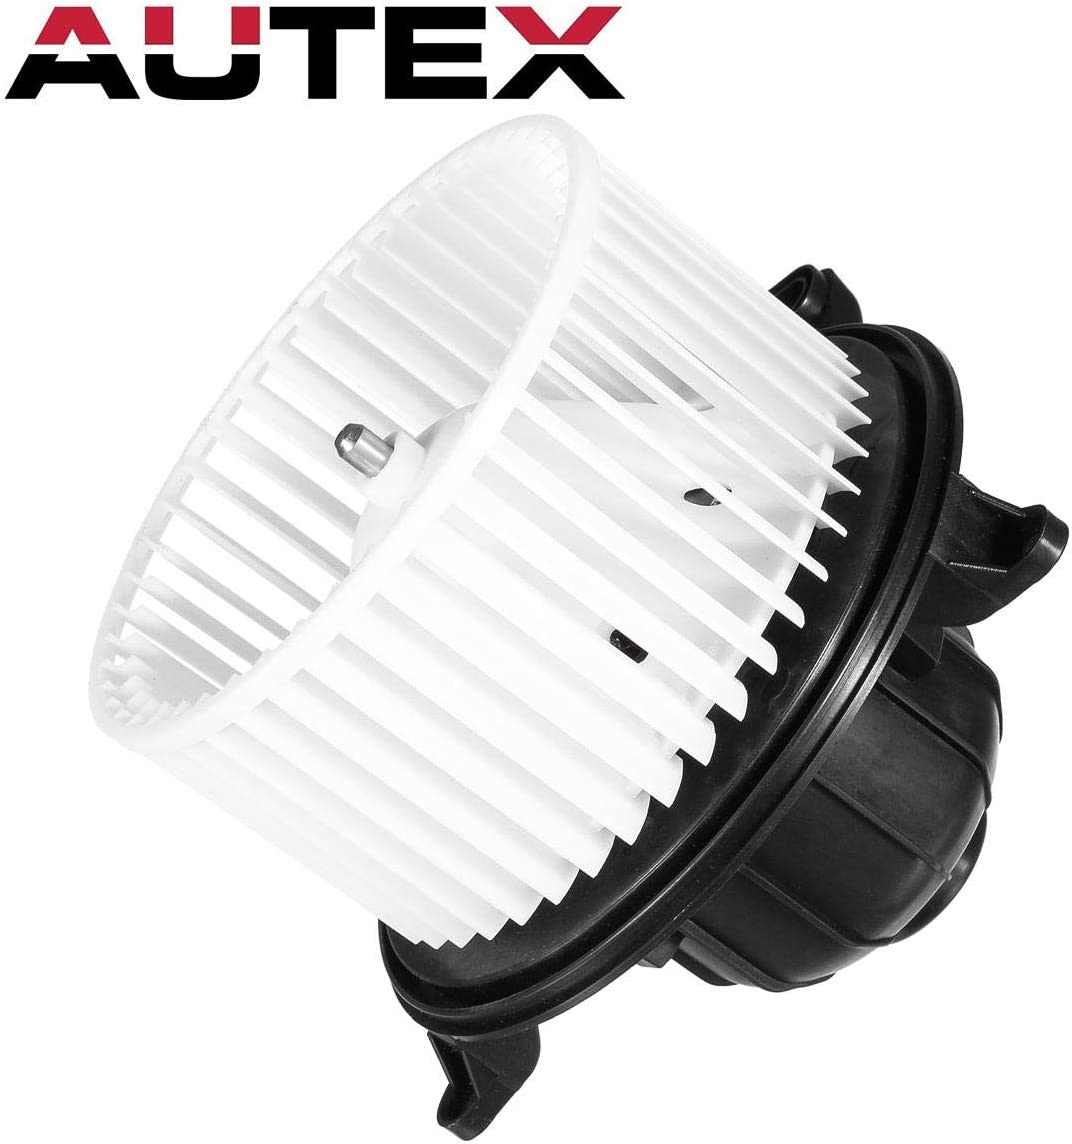 NEW BLOWER MOTOR ASSEMBLY For 2009-2014 FORD EXPEDITION CL1Z 19805 A